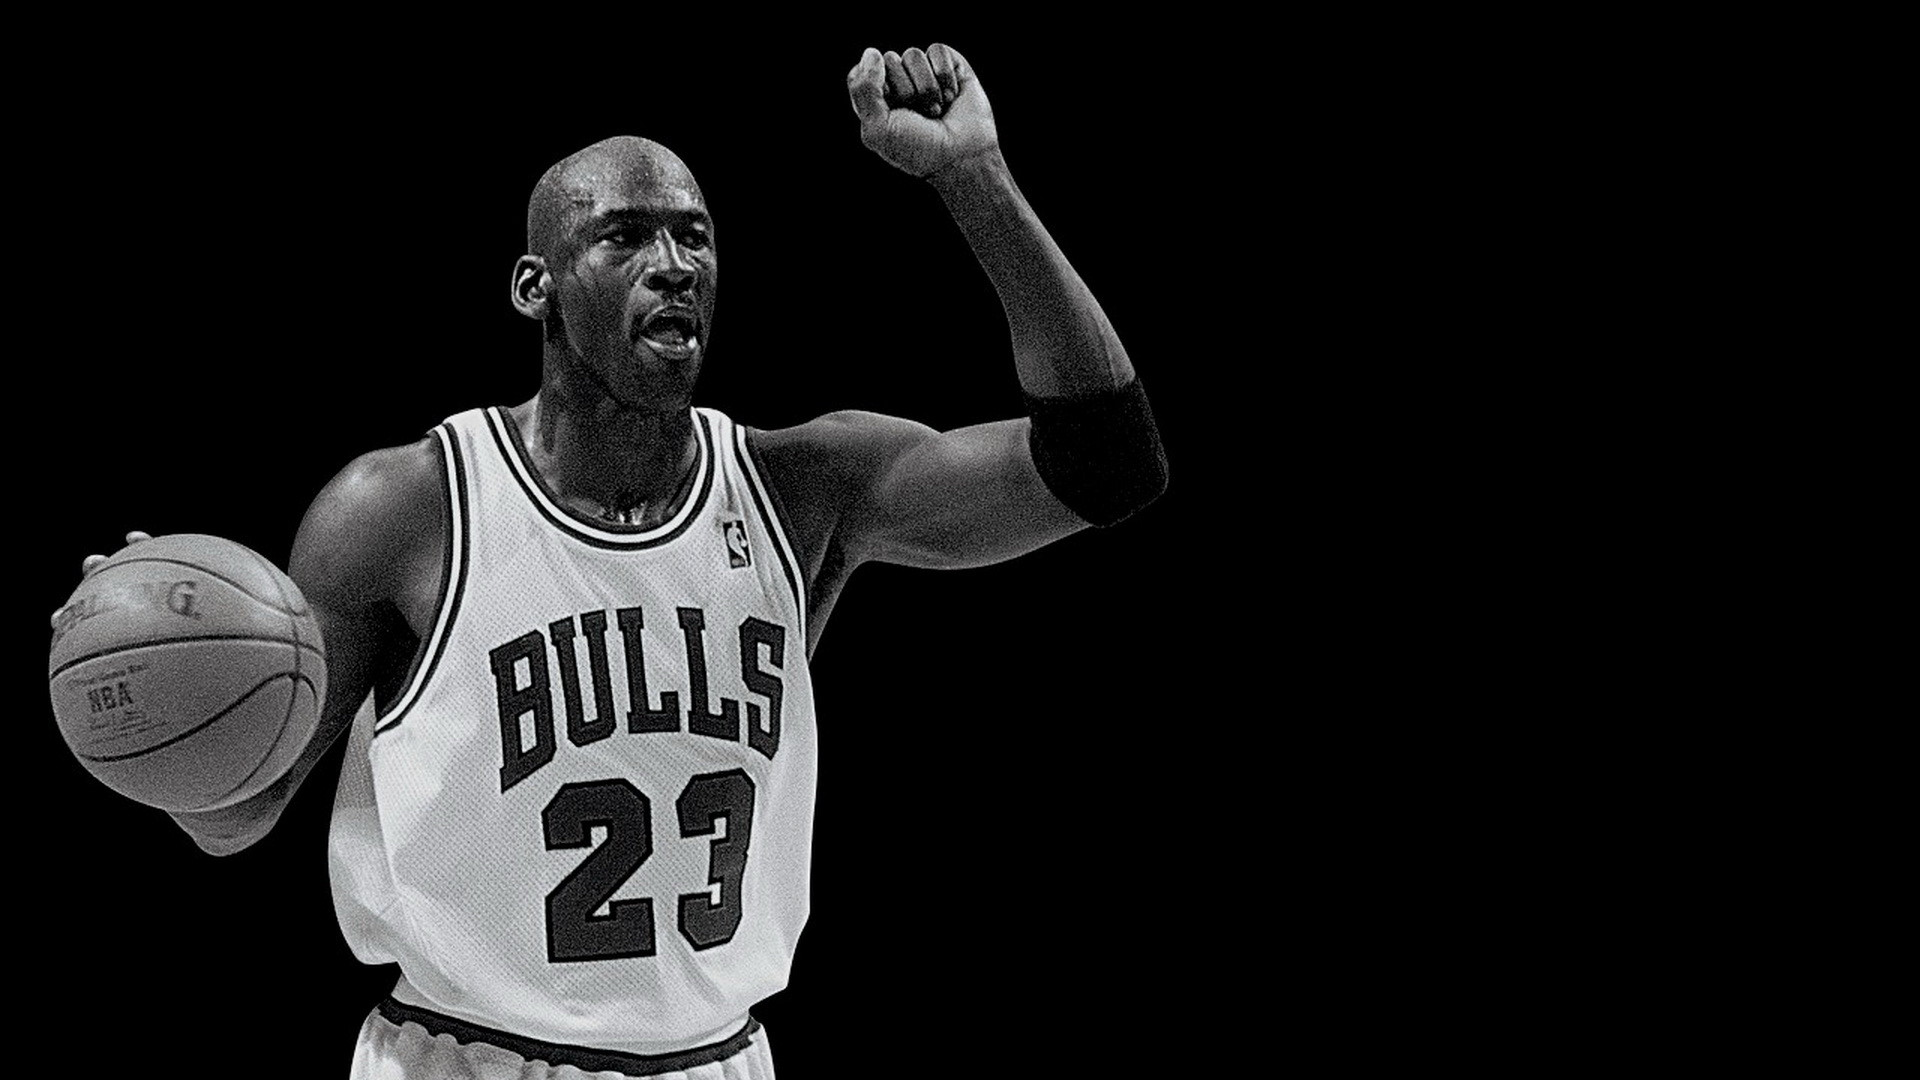 1920x1080 Michael Jordan Basketball 2013 HD Wallpaper